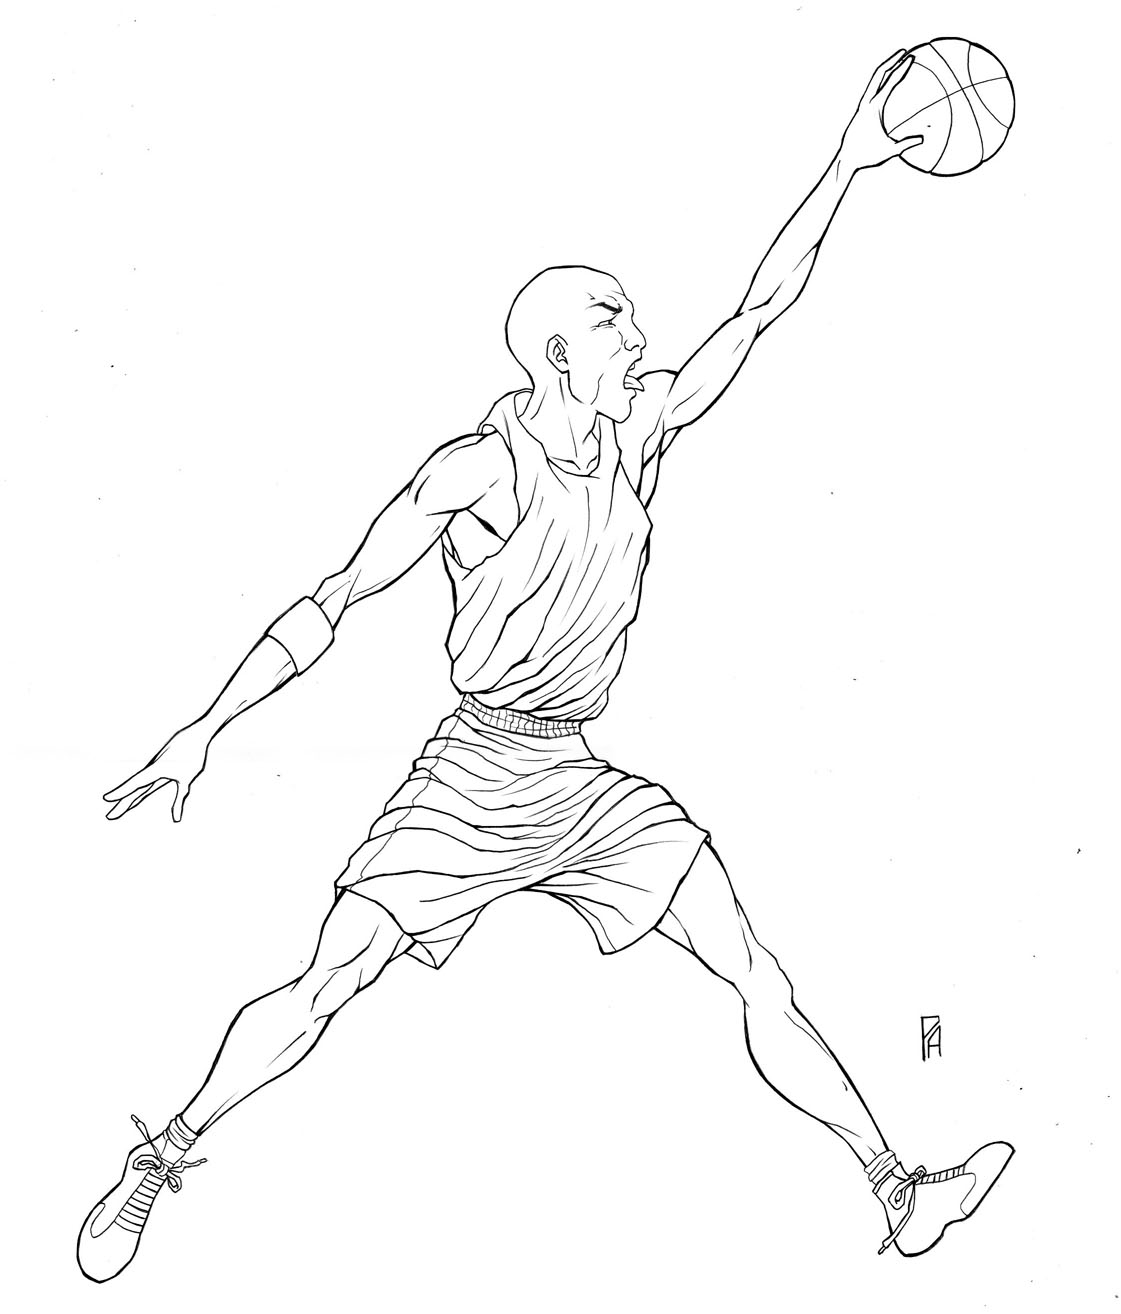 nike shoes coloring pages - inspirational michael jordan coloring pages 67 on free coloring kids with michael jordan coloring pages